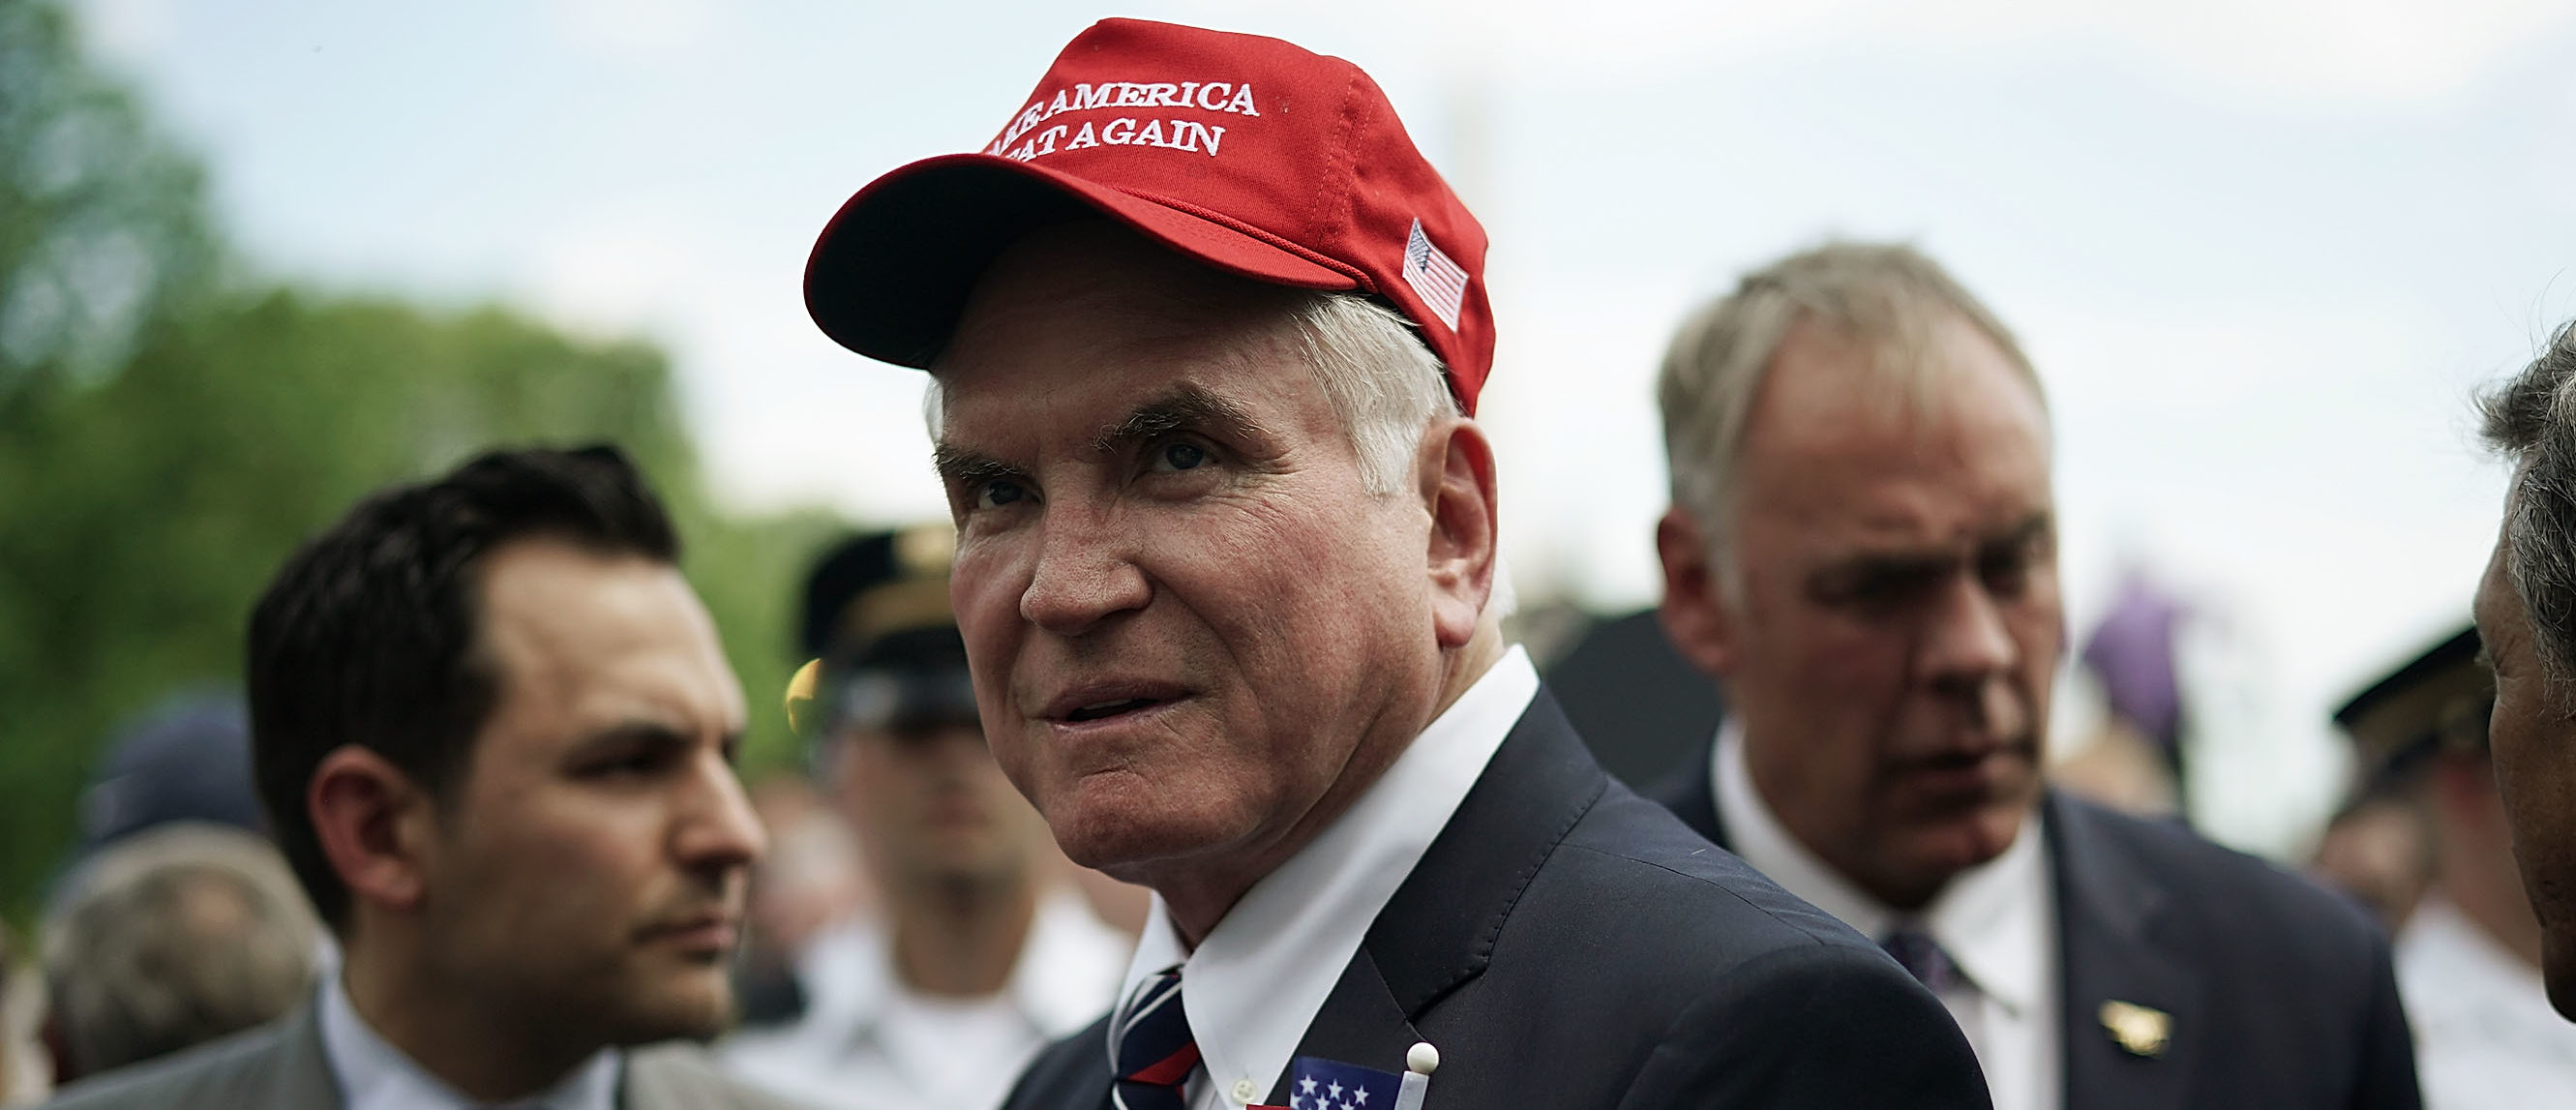 U.S. Rep. Mike Kelly (R-PA) (2nd L) attends a 'Celebration of America' event on the south lawn of the White House June 5, 2018 in Washington, DC. The event, originally intended to honor the Super Bowl champion Philadelphia Eagles, was changed after the majority of the team declined to attend the event due to a disagreement with Trump over NFL players kneeling during the national anthem. (Photo by Alex Wong/Getty Images)